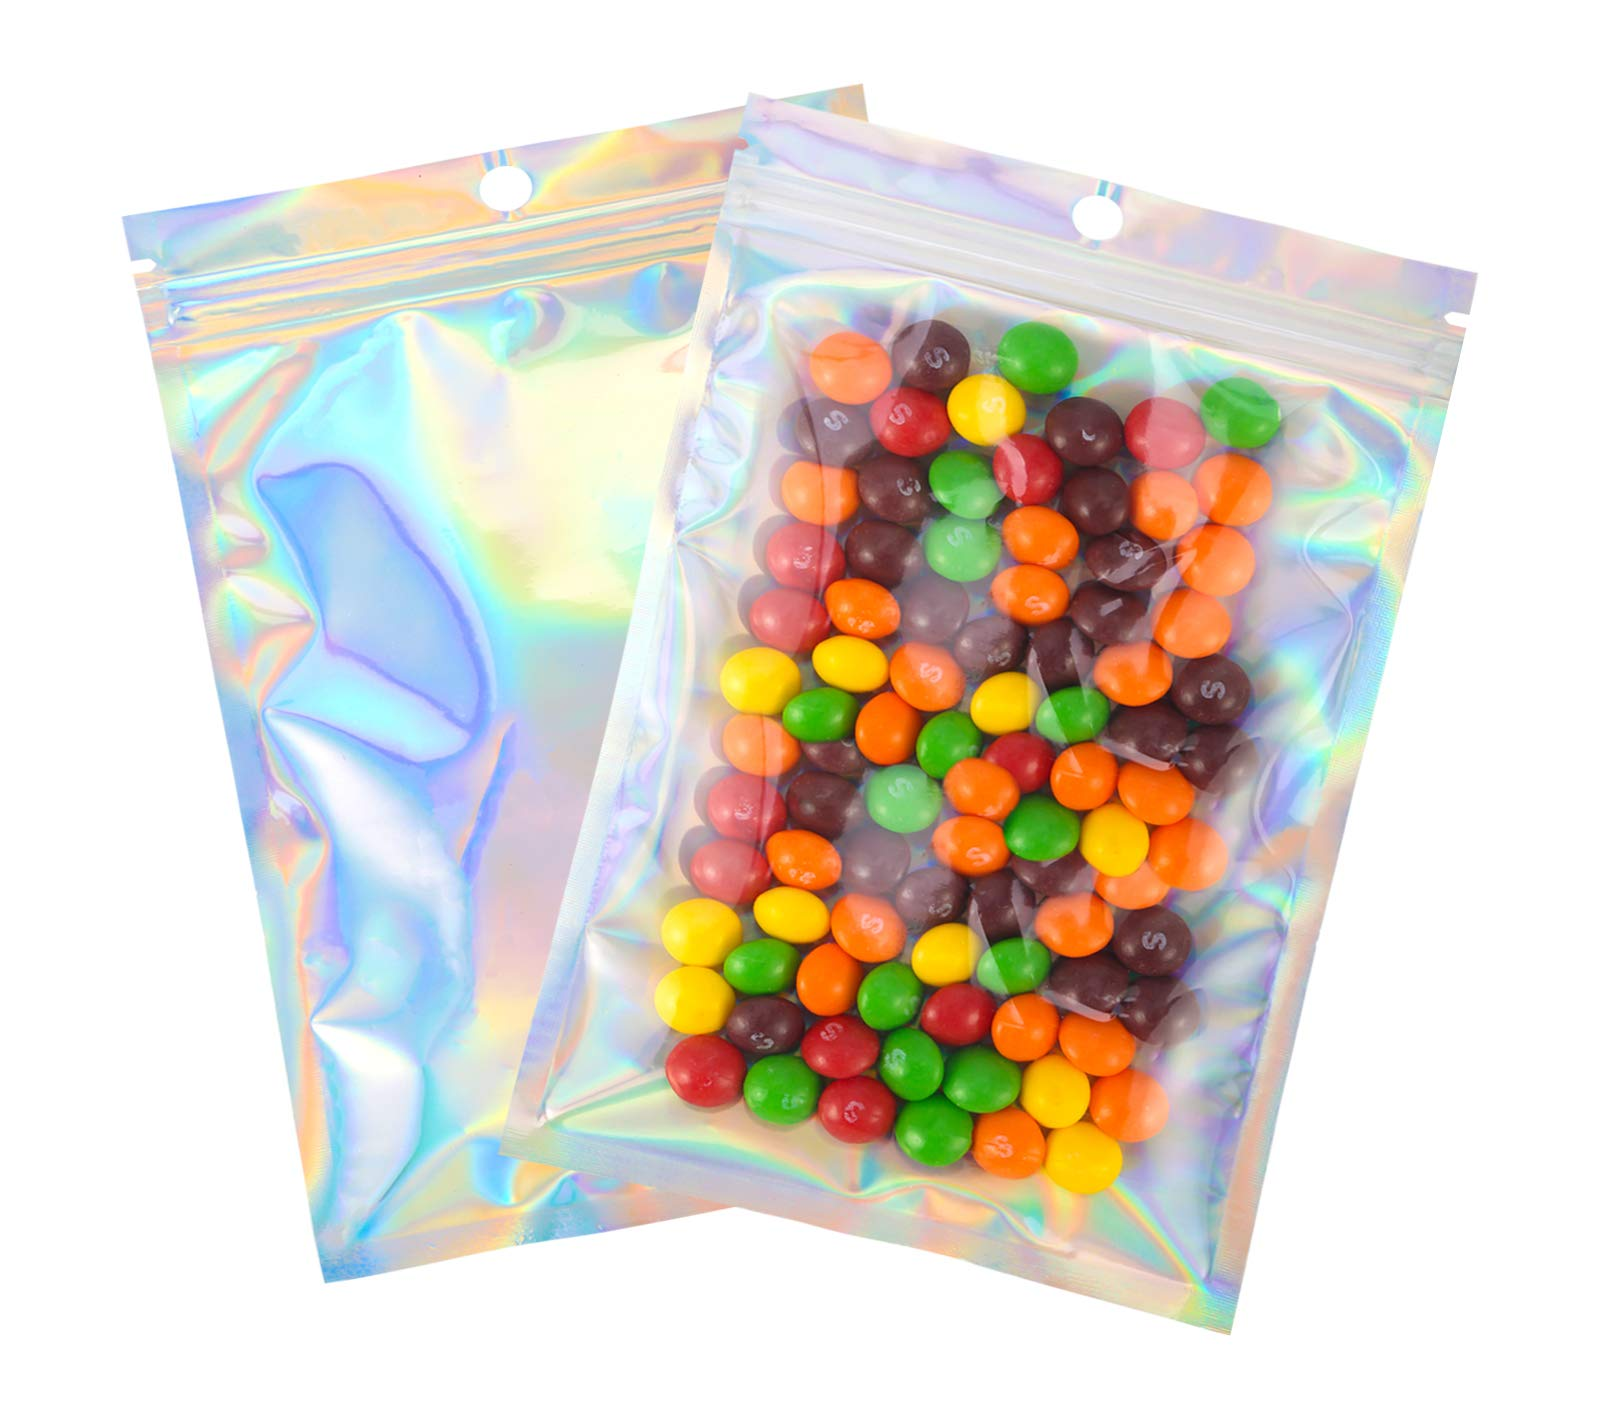 100 Pcs 5.5×7.8 Inch Resealable Smell Proof Bags Mylar Ziplock Bag Cute